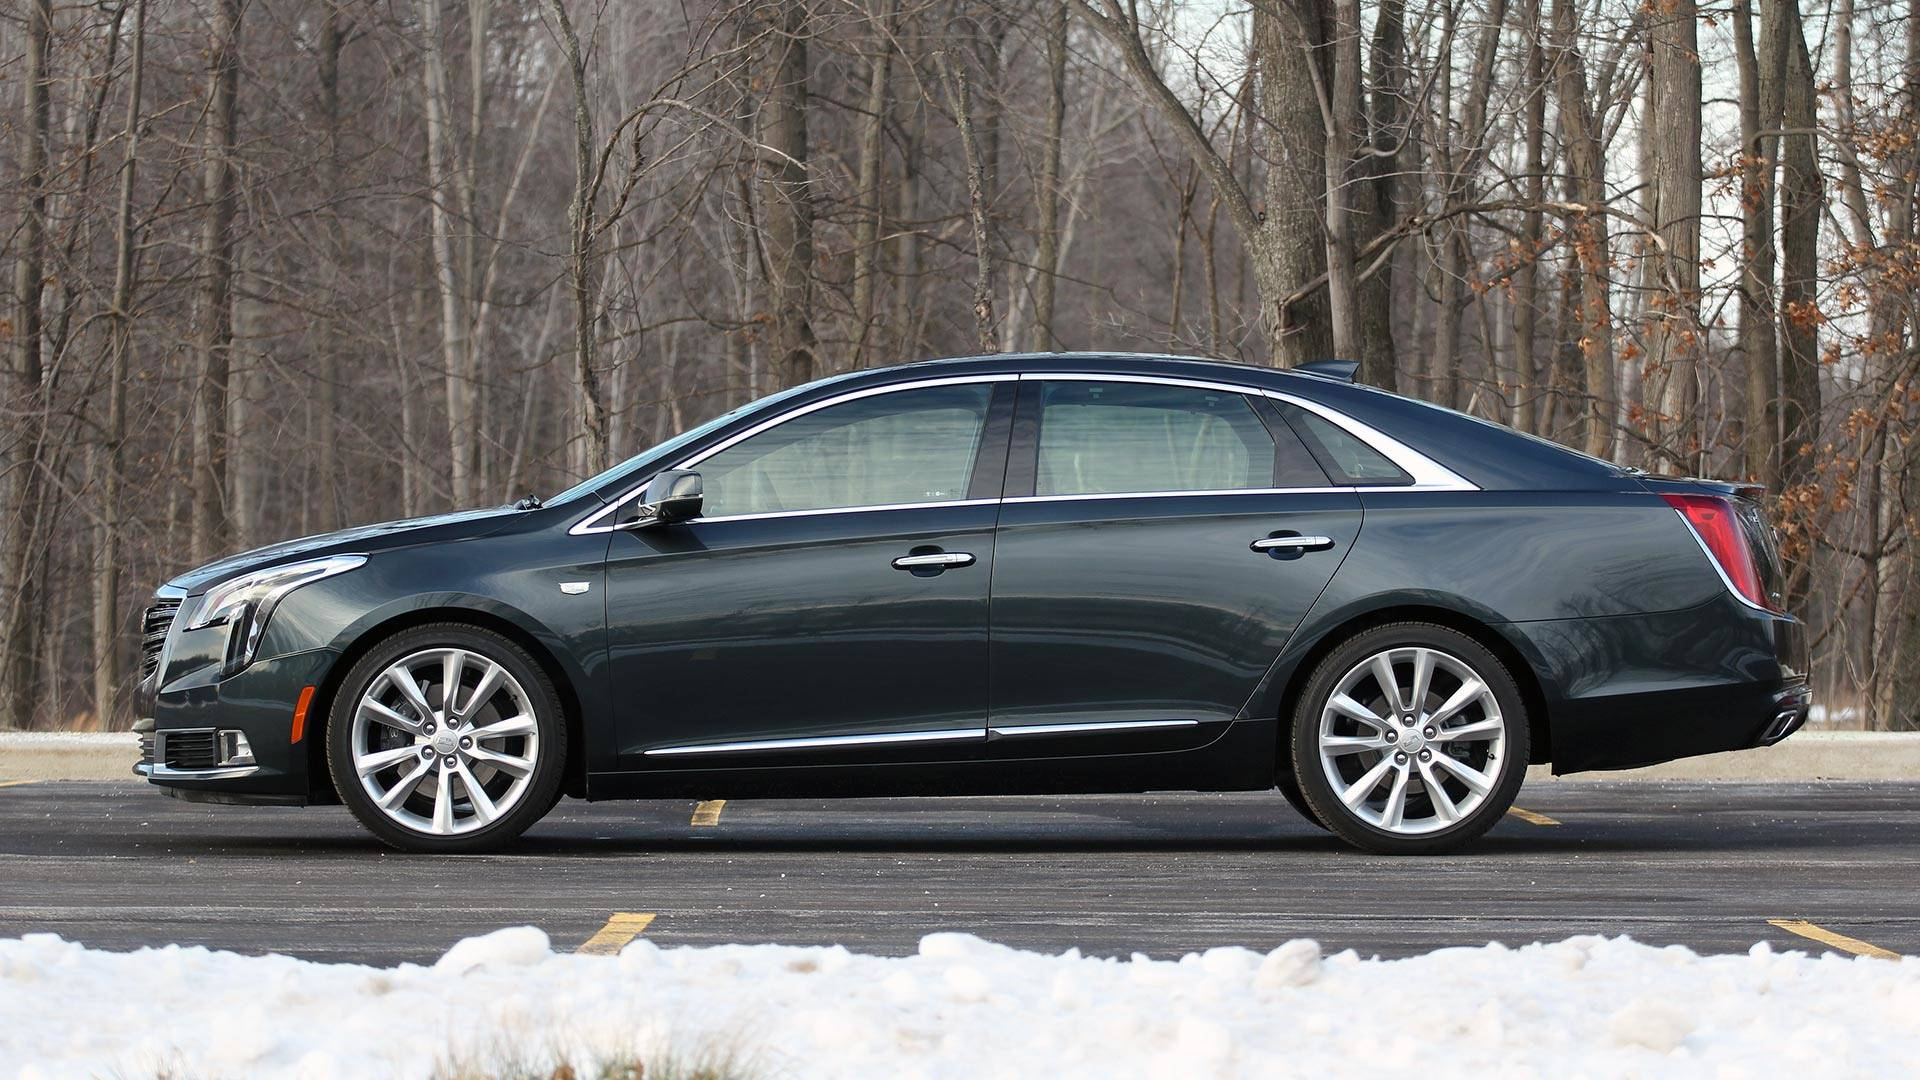 composite large groovecar radiant sedan silver livery cadillac metallic w research xts